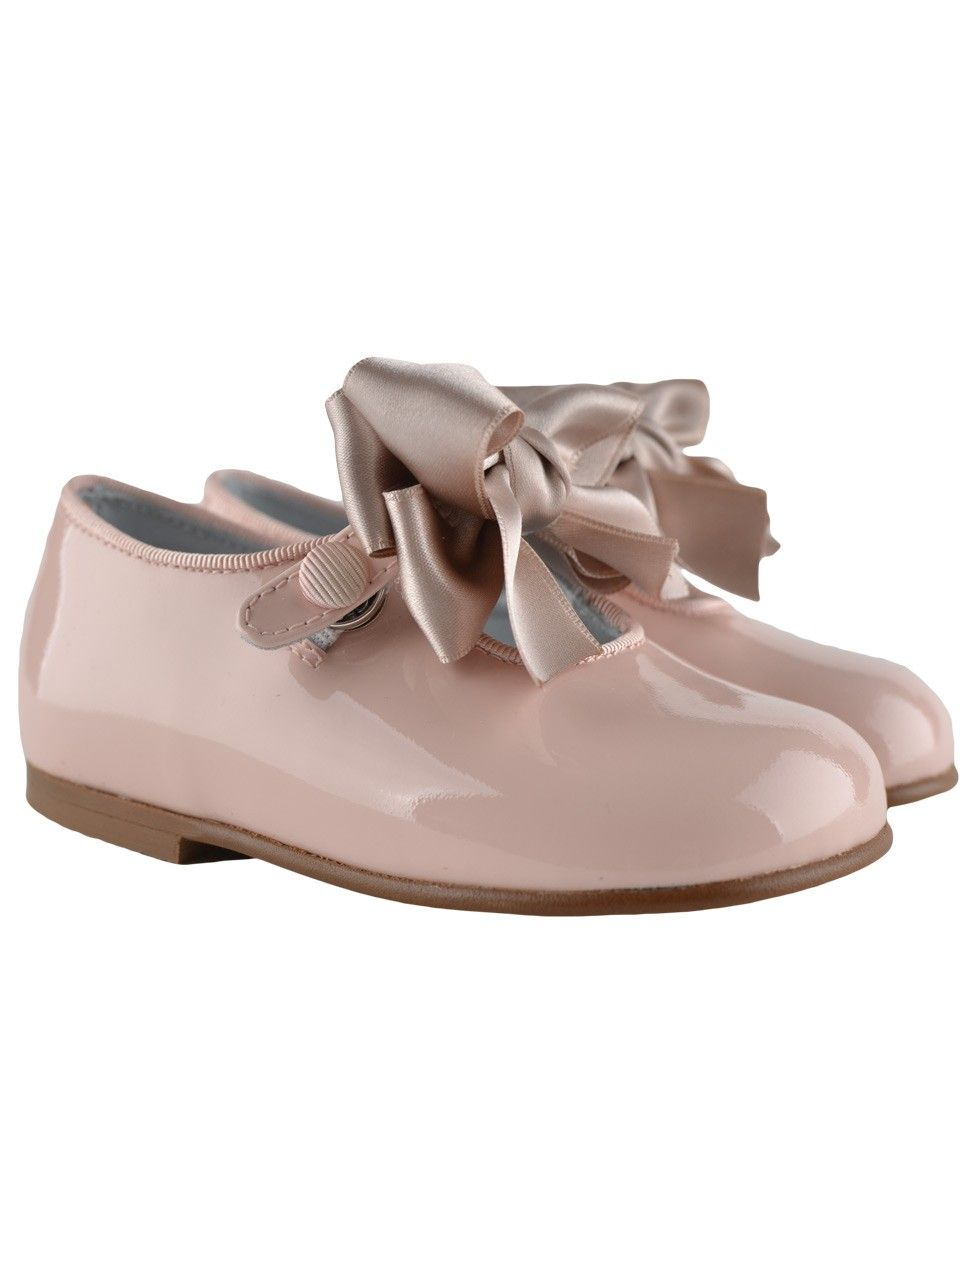 Cute baby shoes, Kid shoes, Baby girl shoes